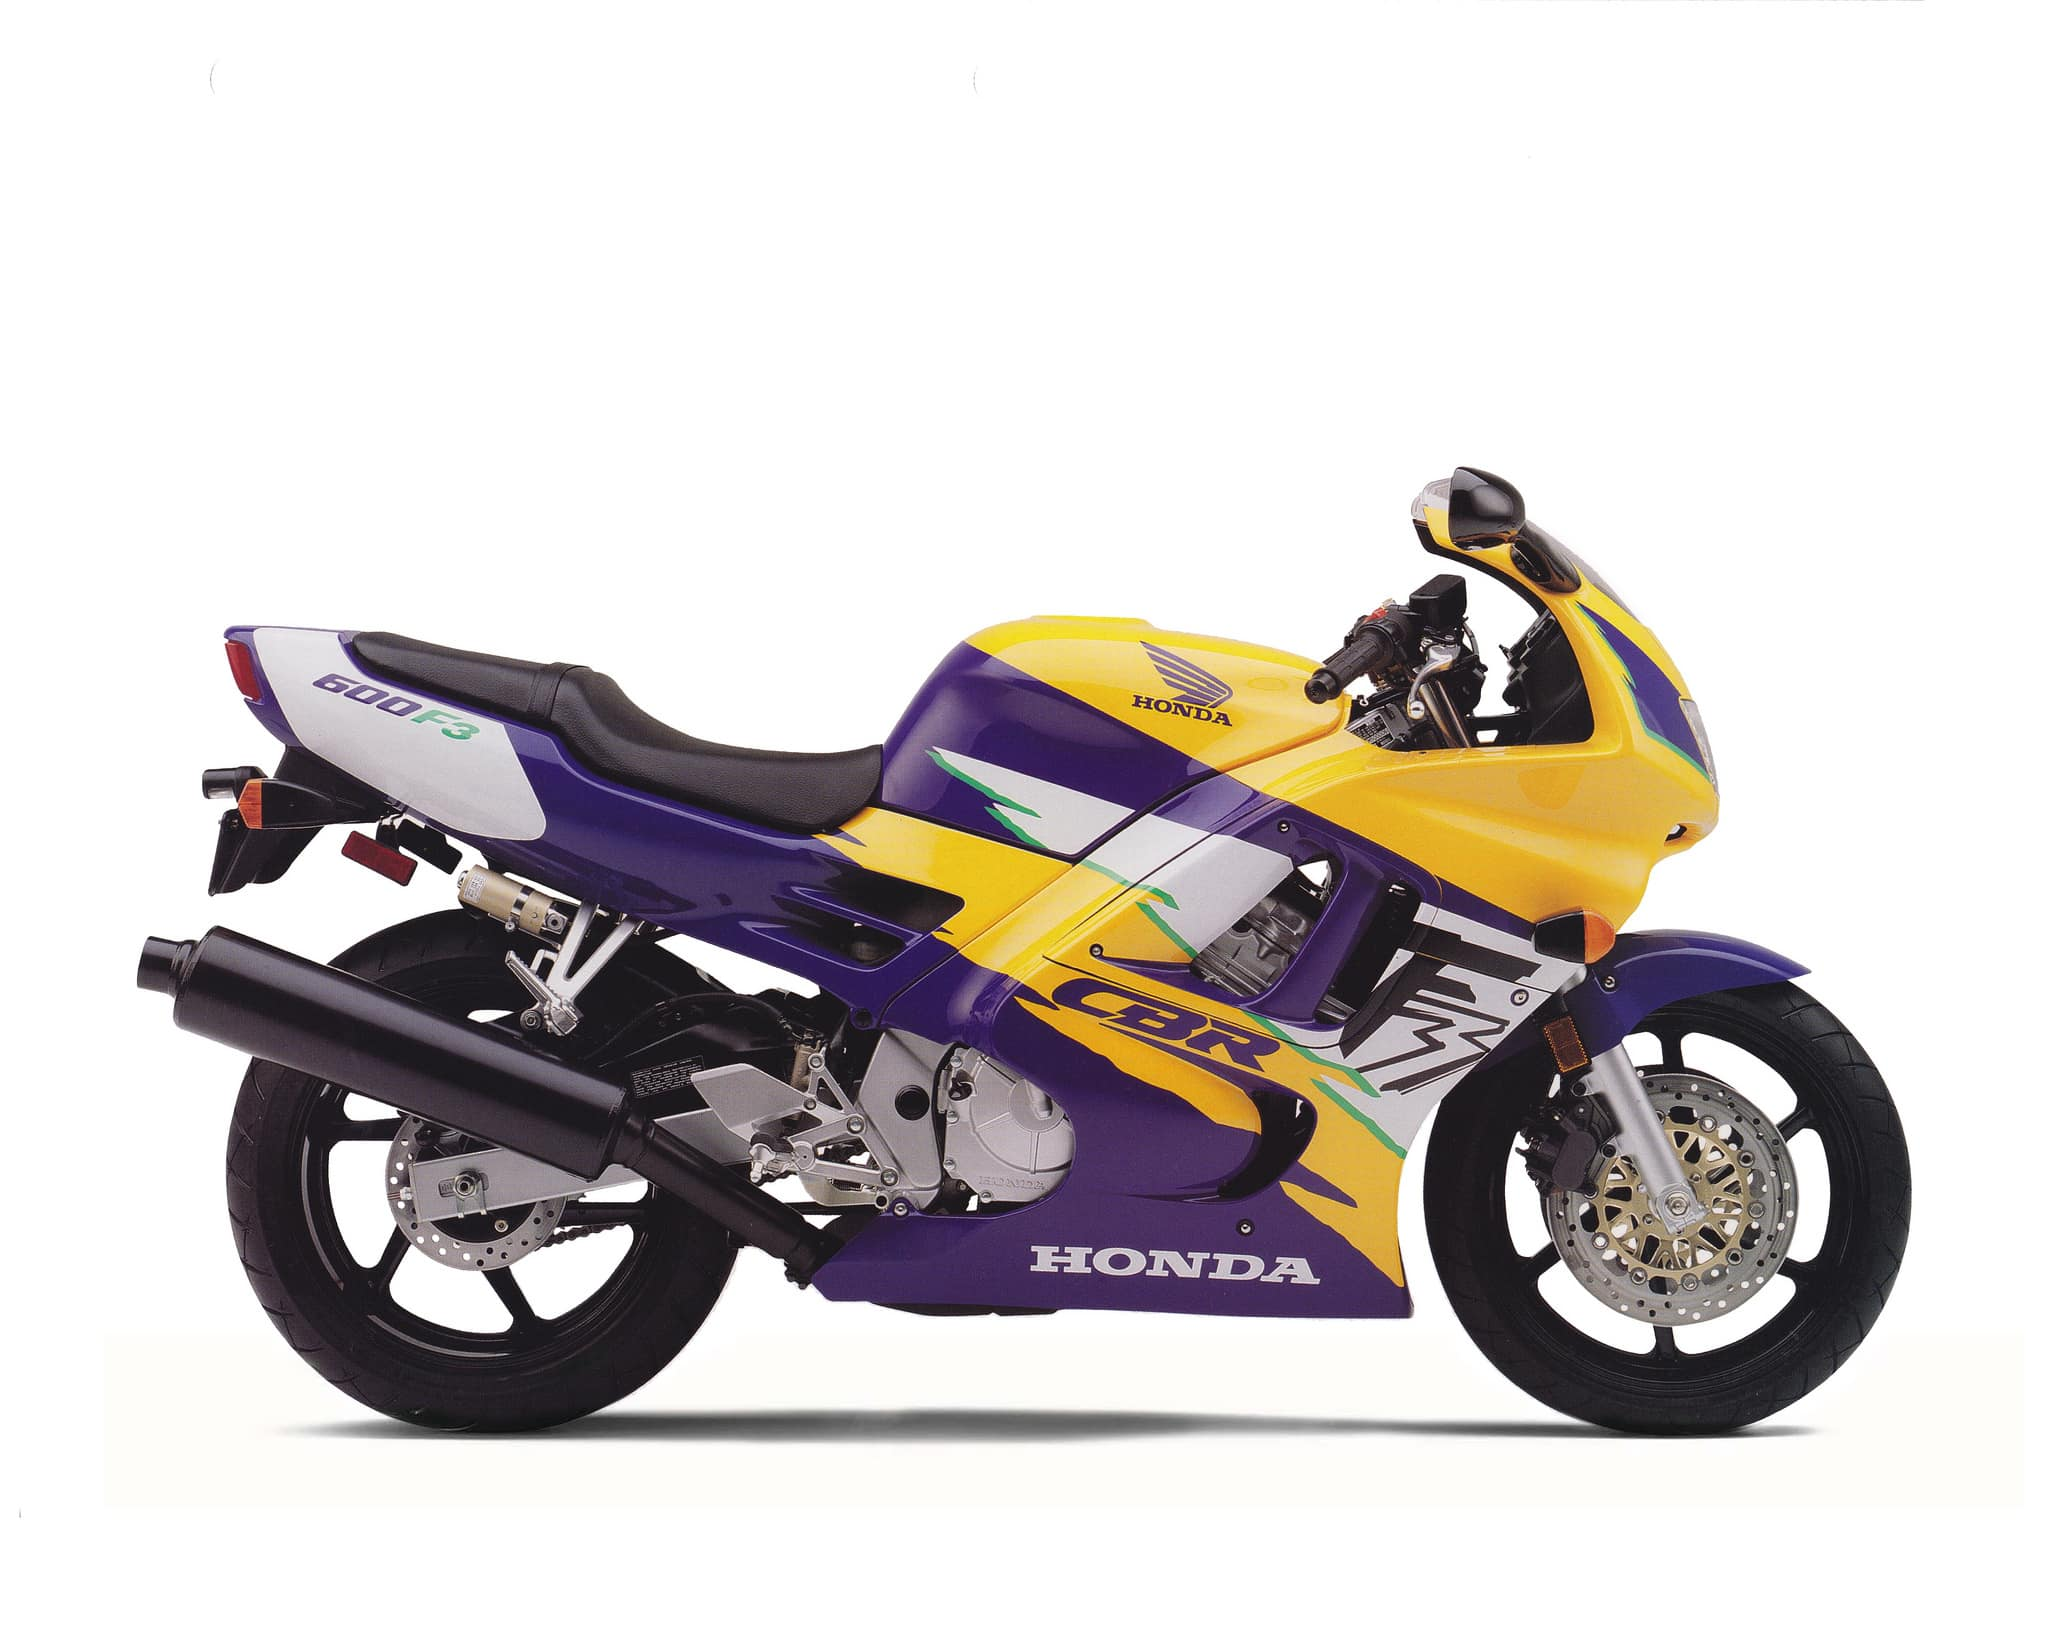 Sensational Honda Cbr600F Buyers Guide Fast Classic And Awesome Alphanode Cool Chair Designs And Ideas Alphanodeonline